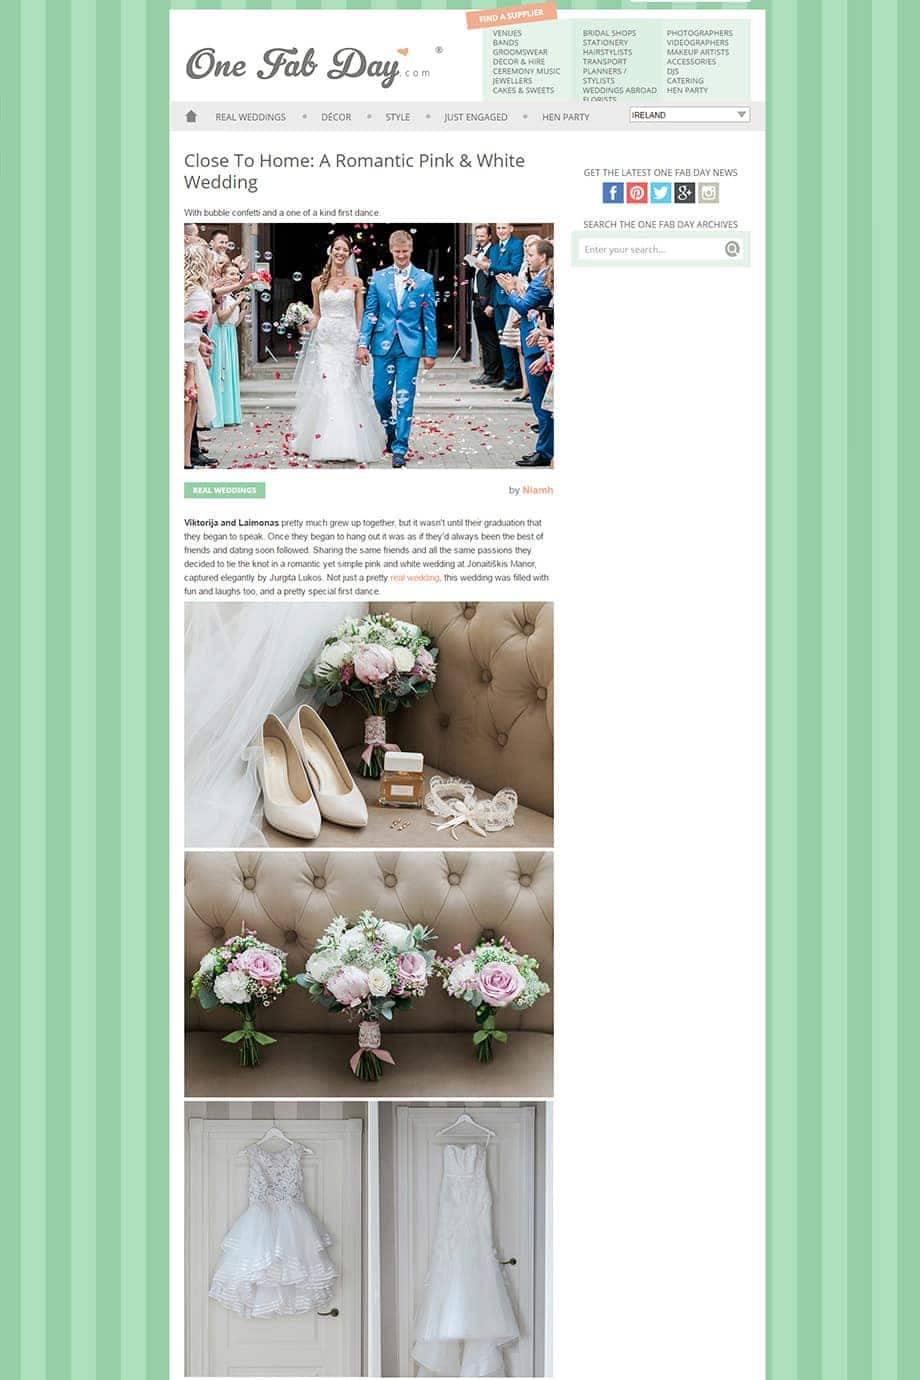 Close To Home A Romantic Pink White Wedding OneFabDay fb